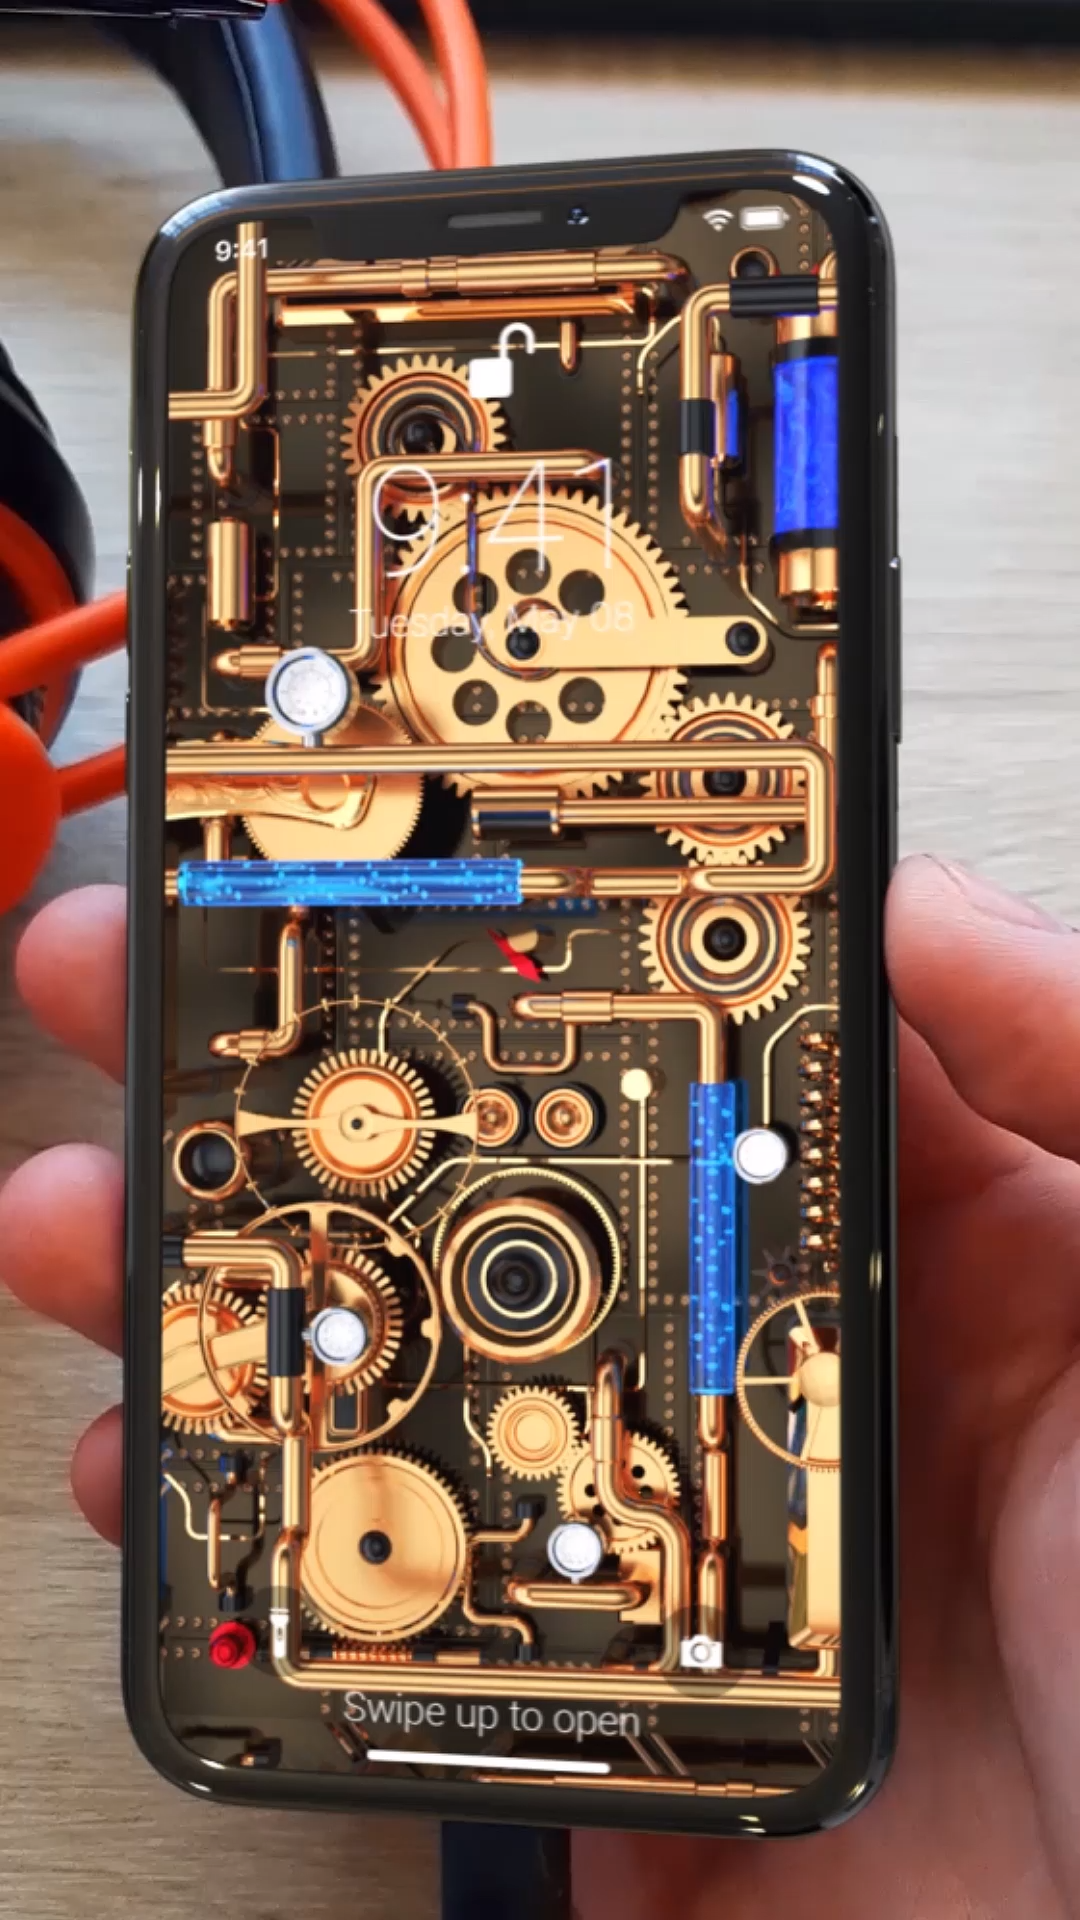 Steam Punk Live Wallpaper For Iphone Video In 2020 Apple Logo Wallpaper Iphone Iphone Wallpaper Iphone Wallpaper Video